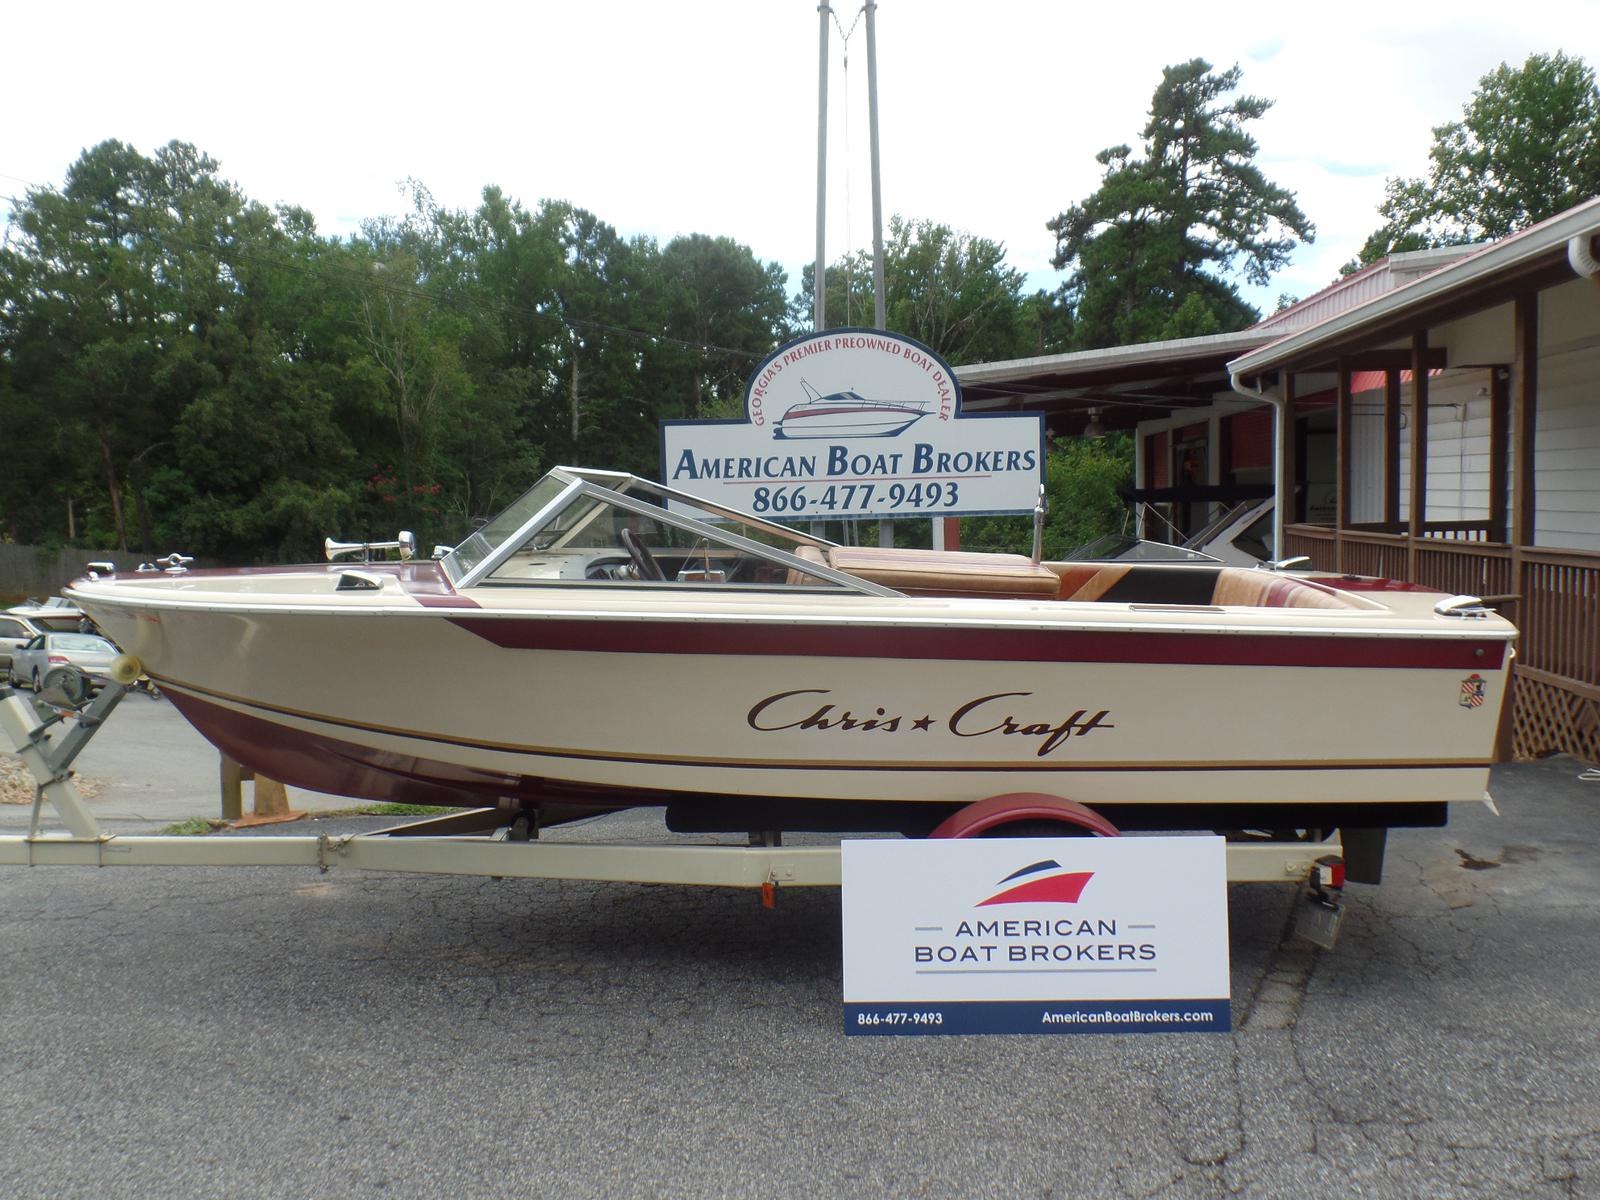 Chris craft runabout boats for sale for Chris craft cruiser for sale